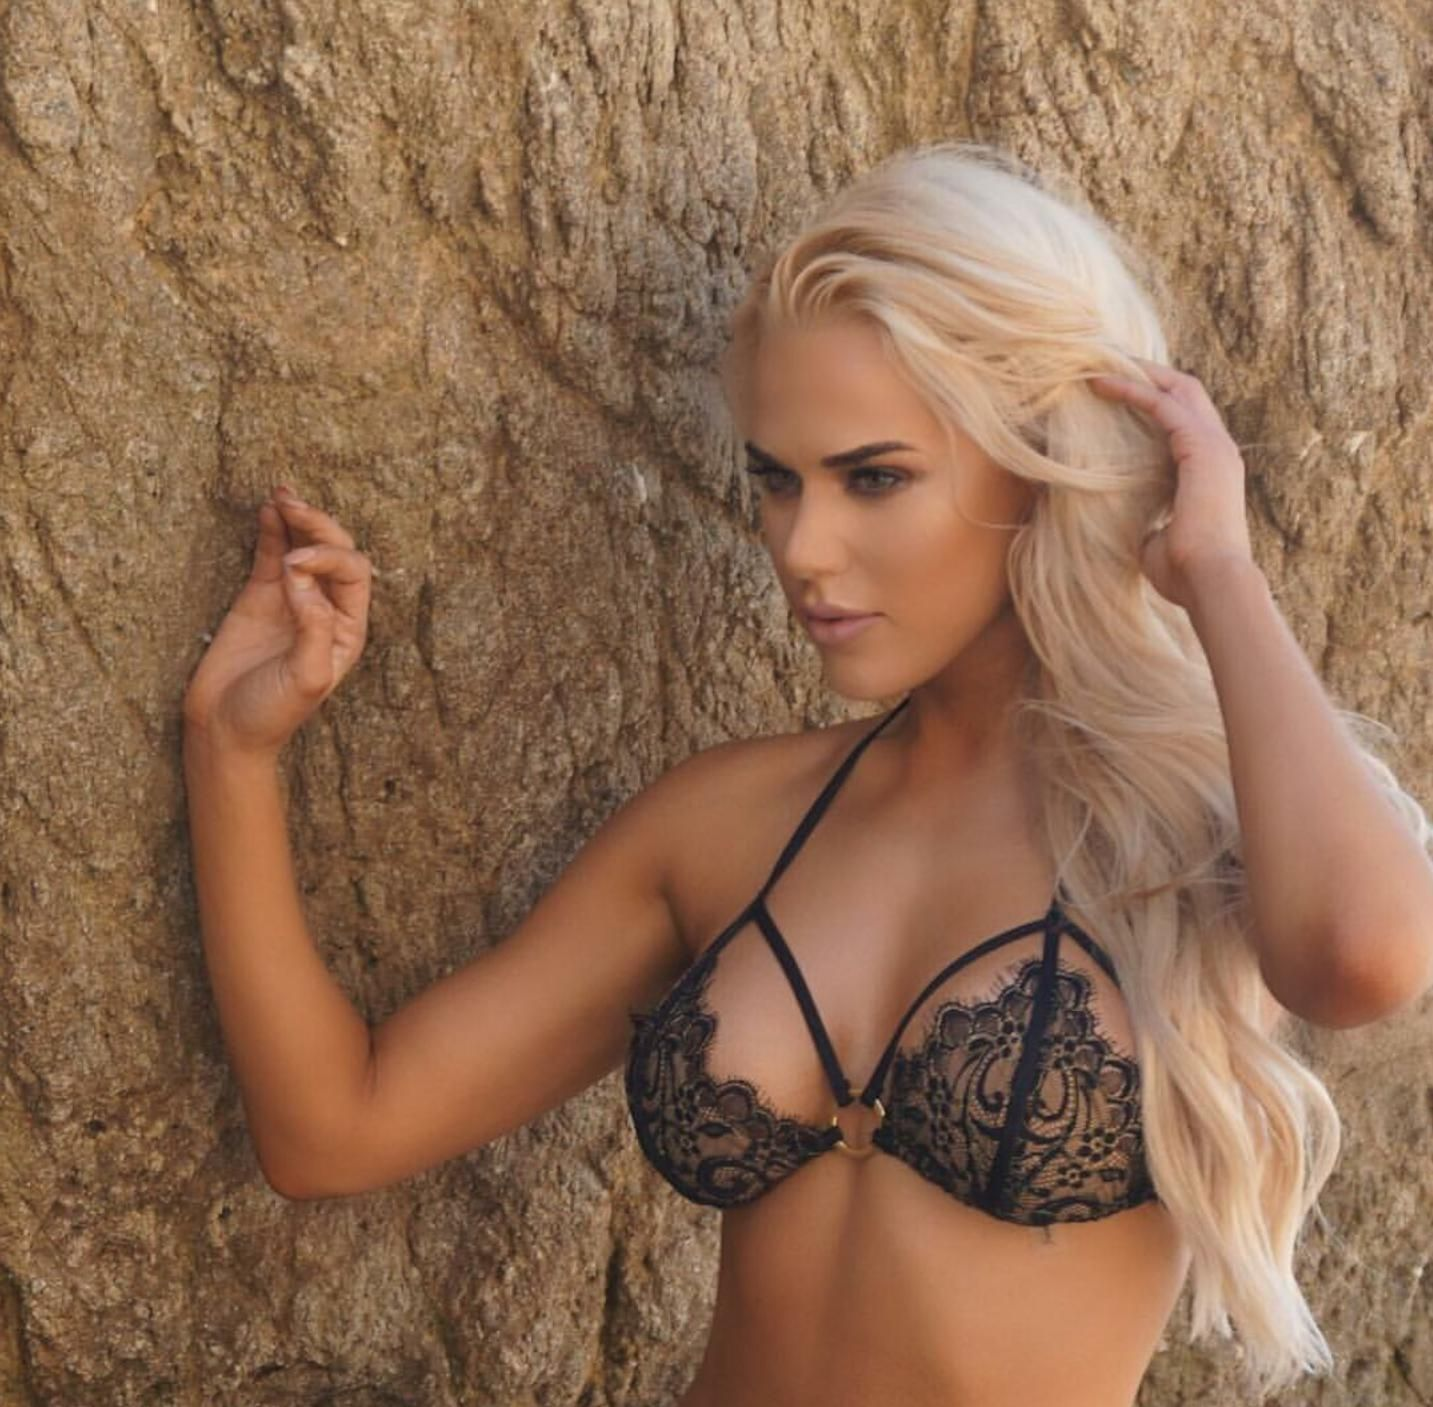 Celebrity Lana (WWE) nude photos 2019